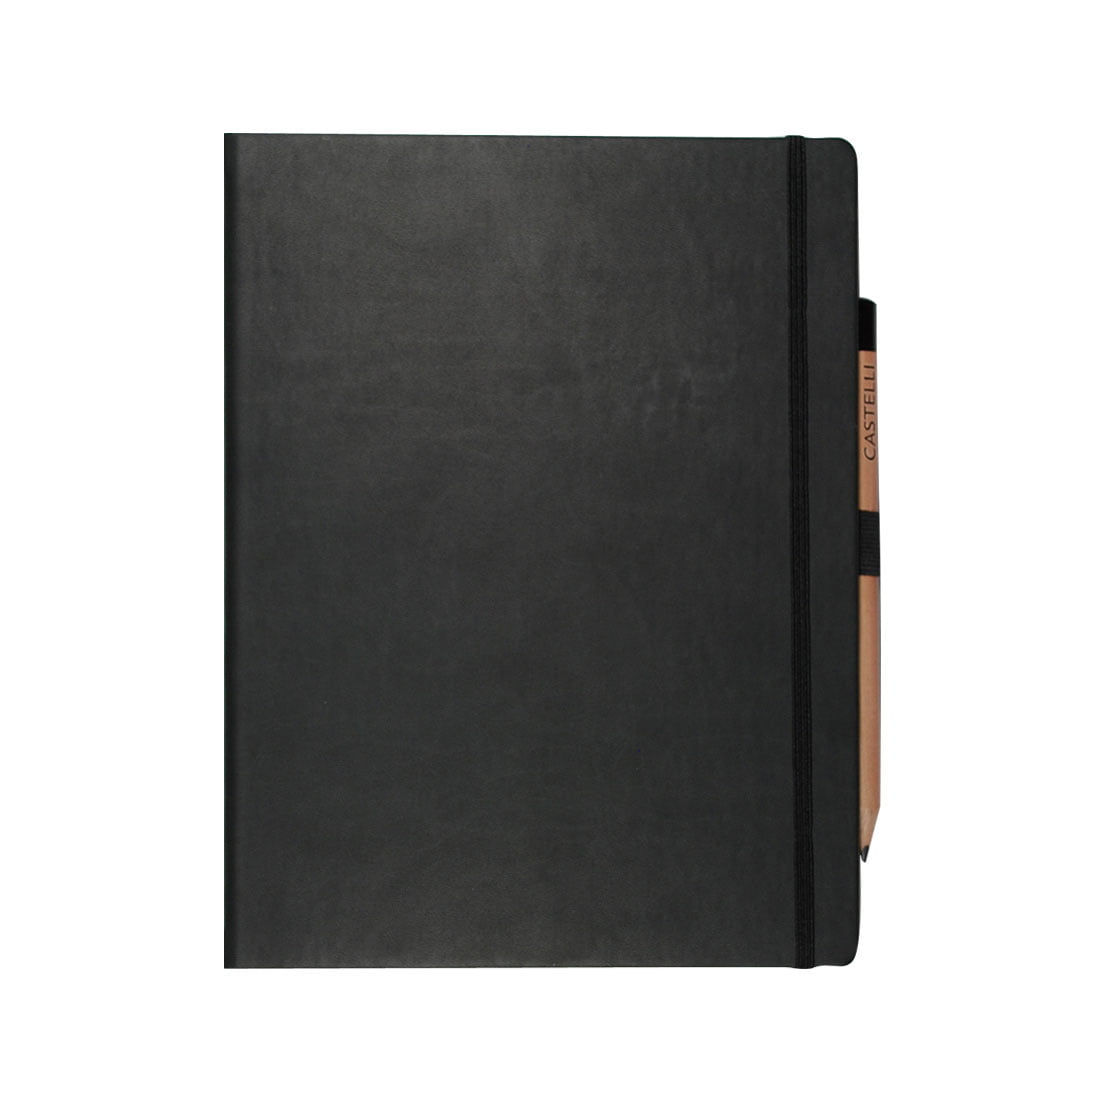 Graphite large note book, complete with internal document wallet, ibbon marker, rounded corners and elasticated closure band.